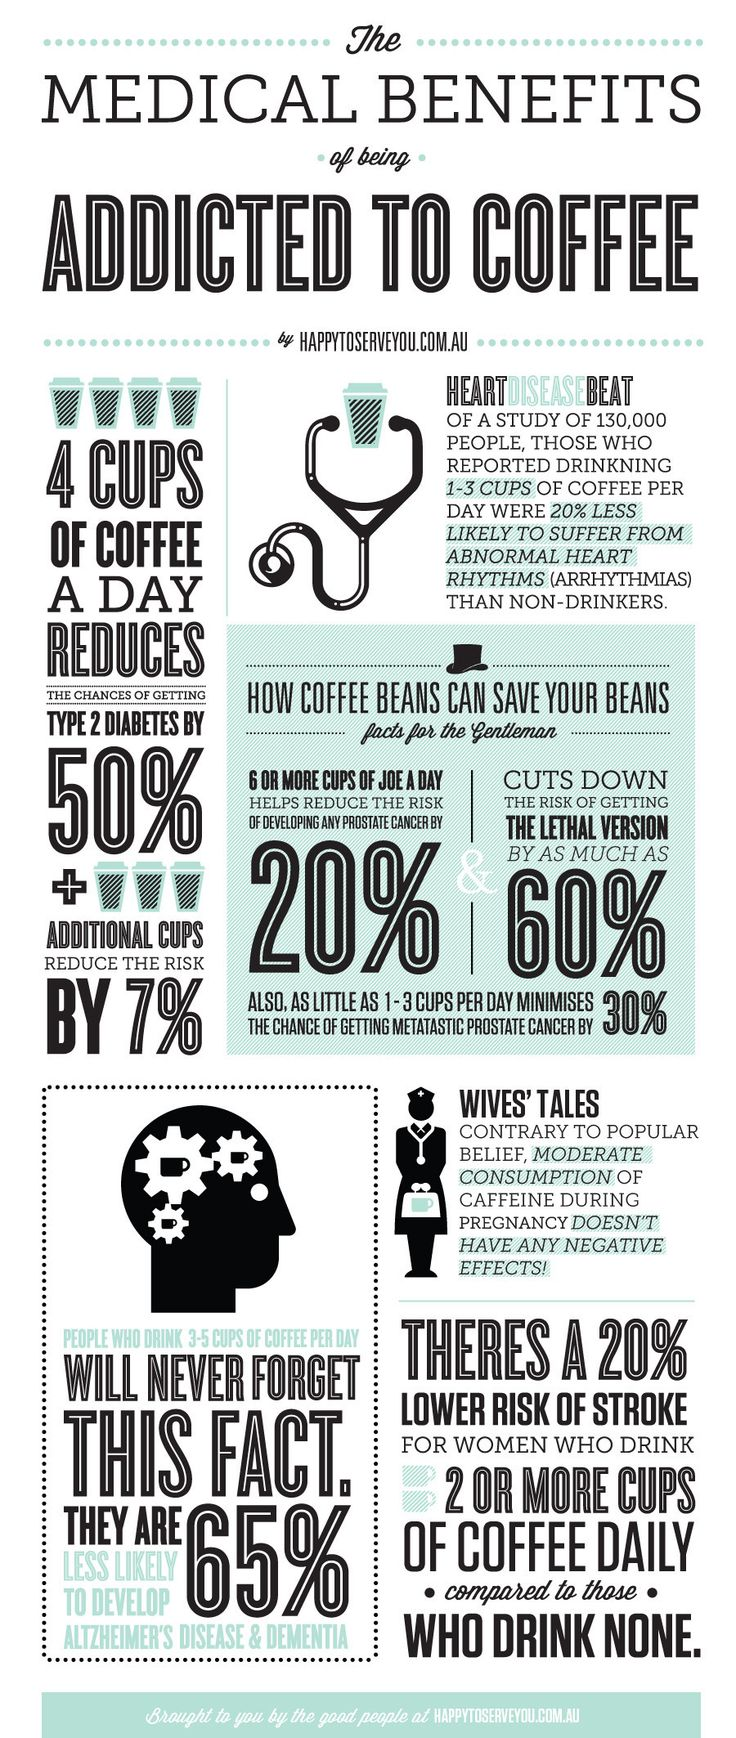 So coffee IS good for you! I will be especially glad I read this when I'm pregnant someday!